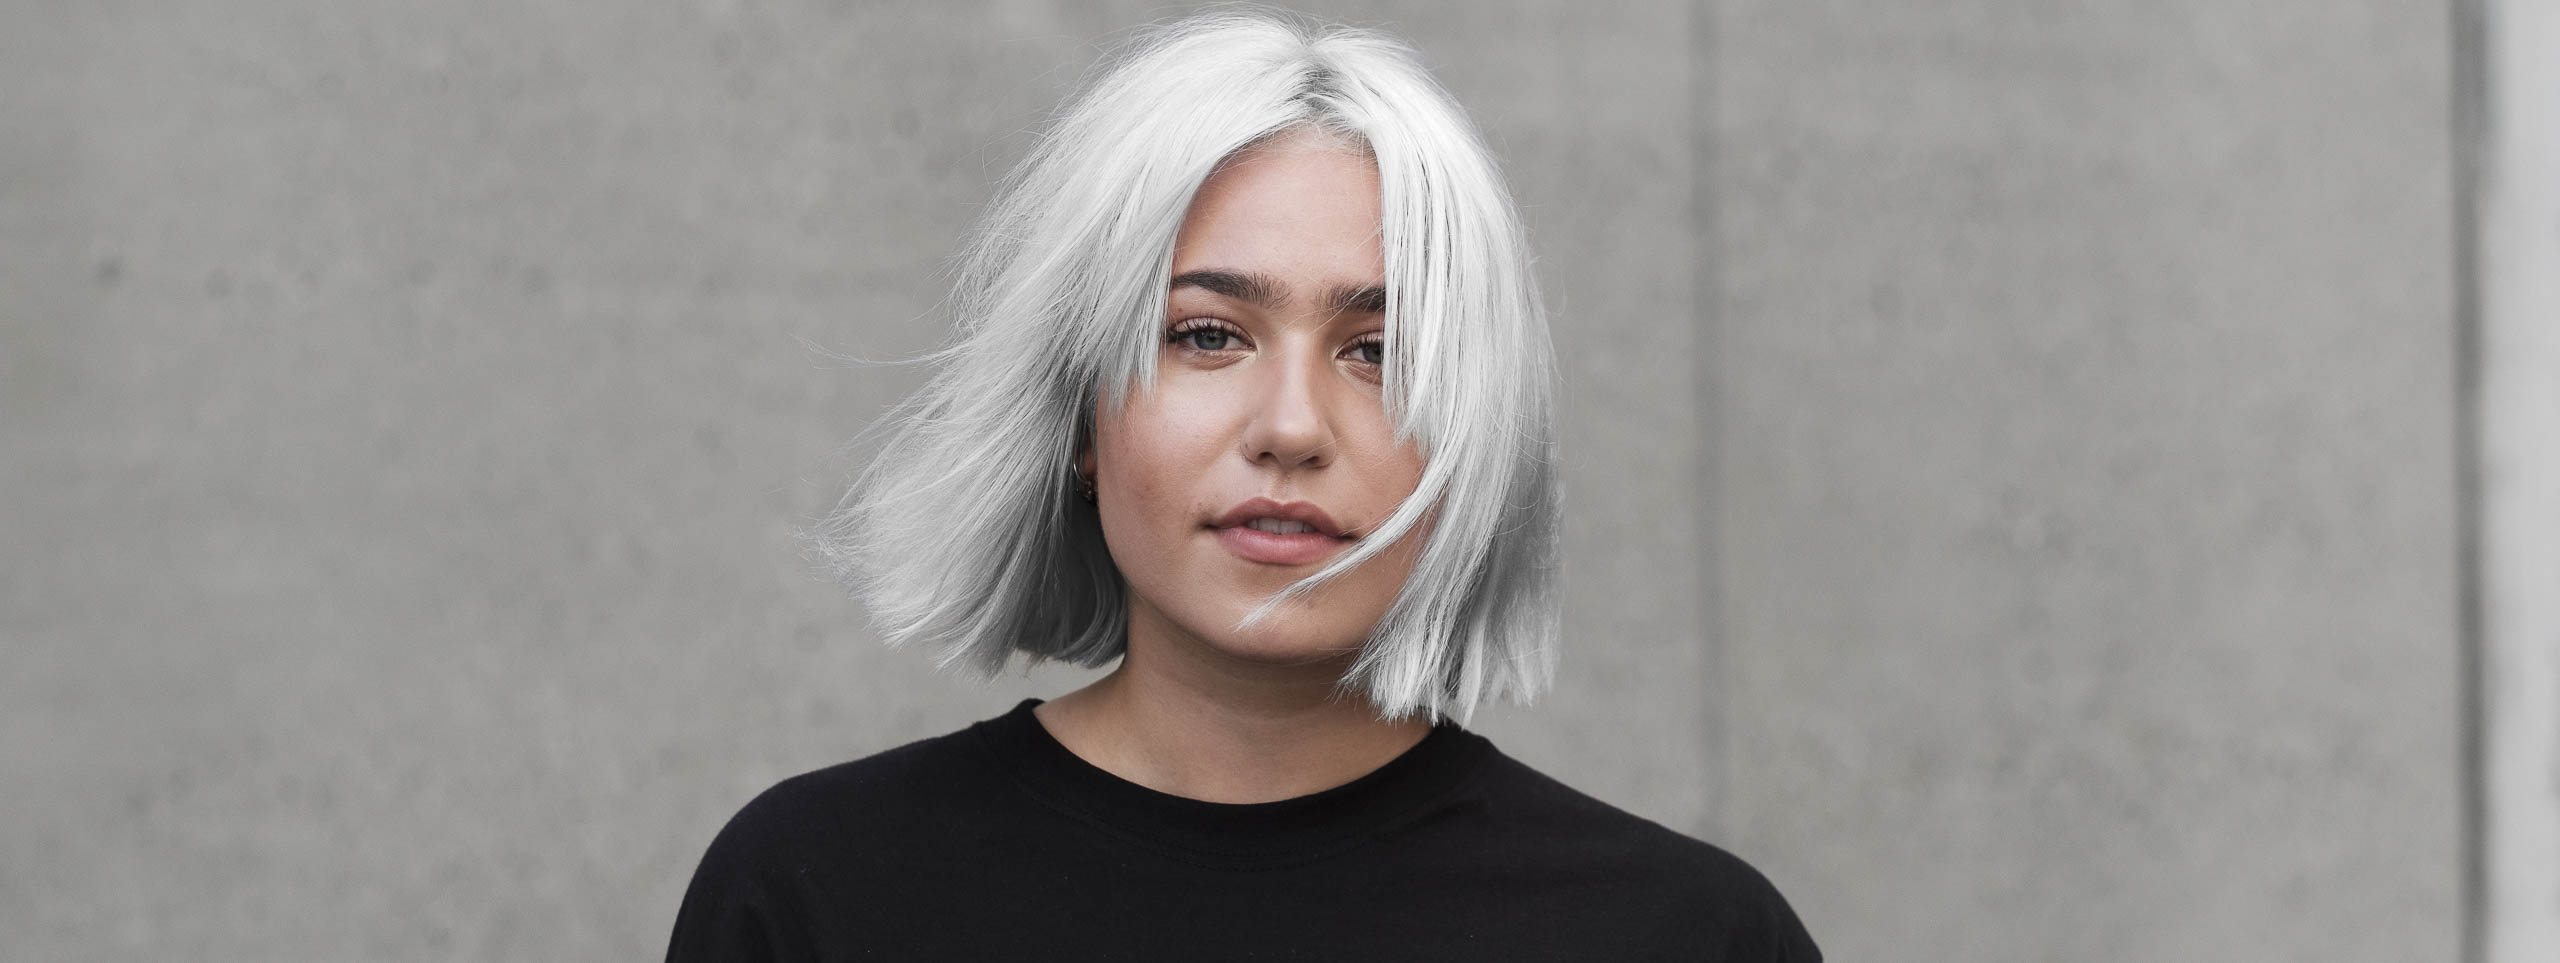 Woman with metallic silver hair